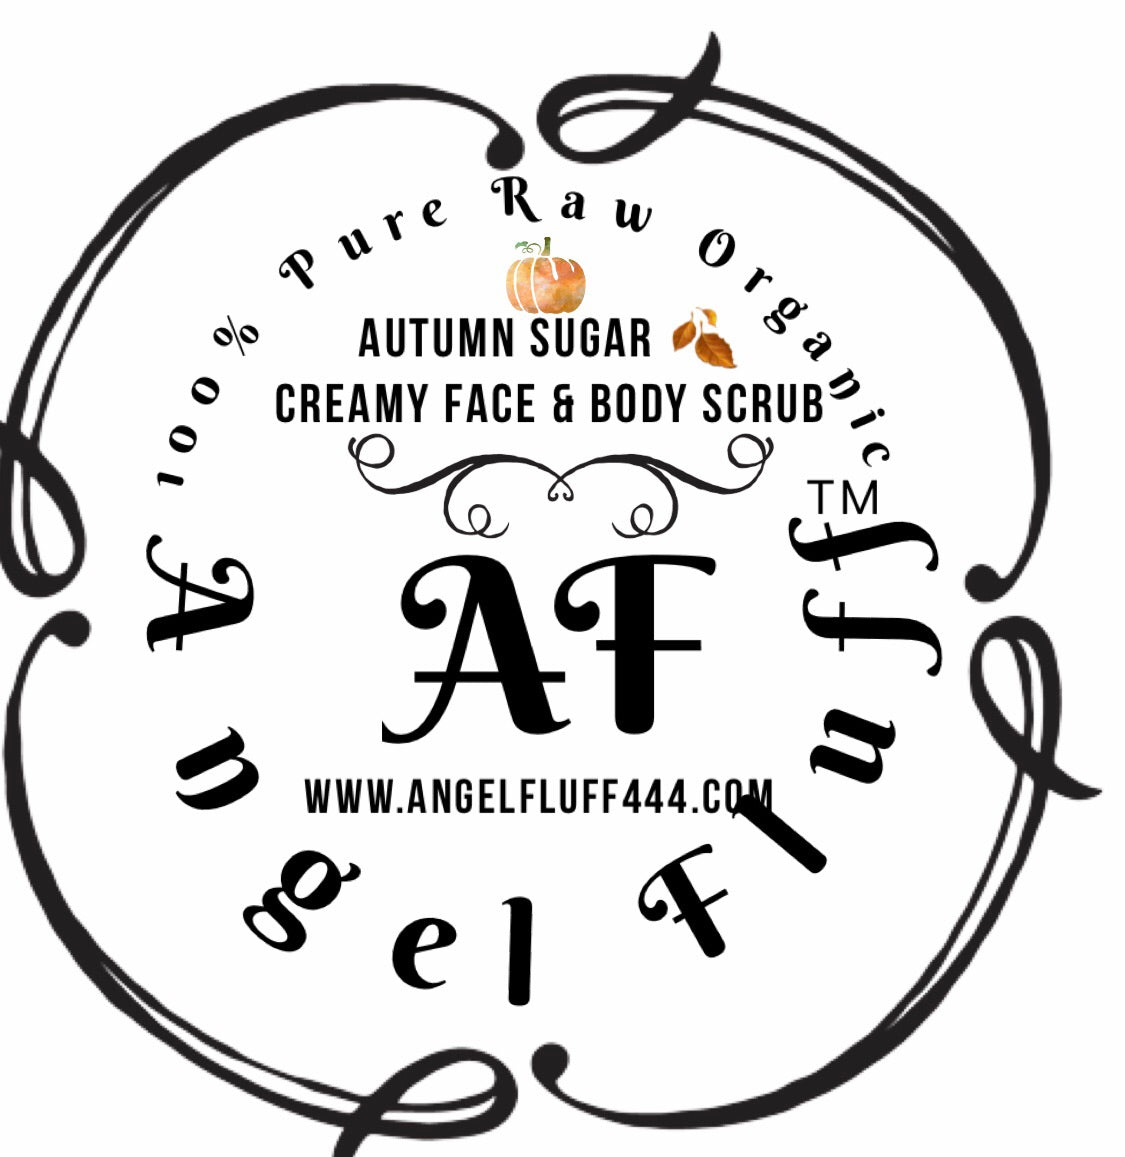 Autumn Sugar Creamy Face & Body Scrub Limited Edition